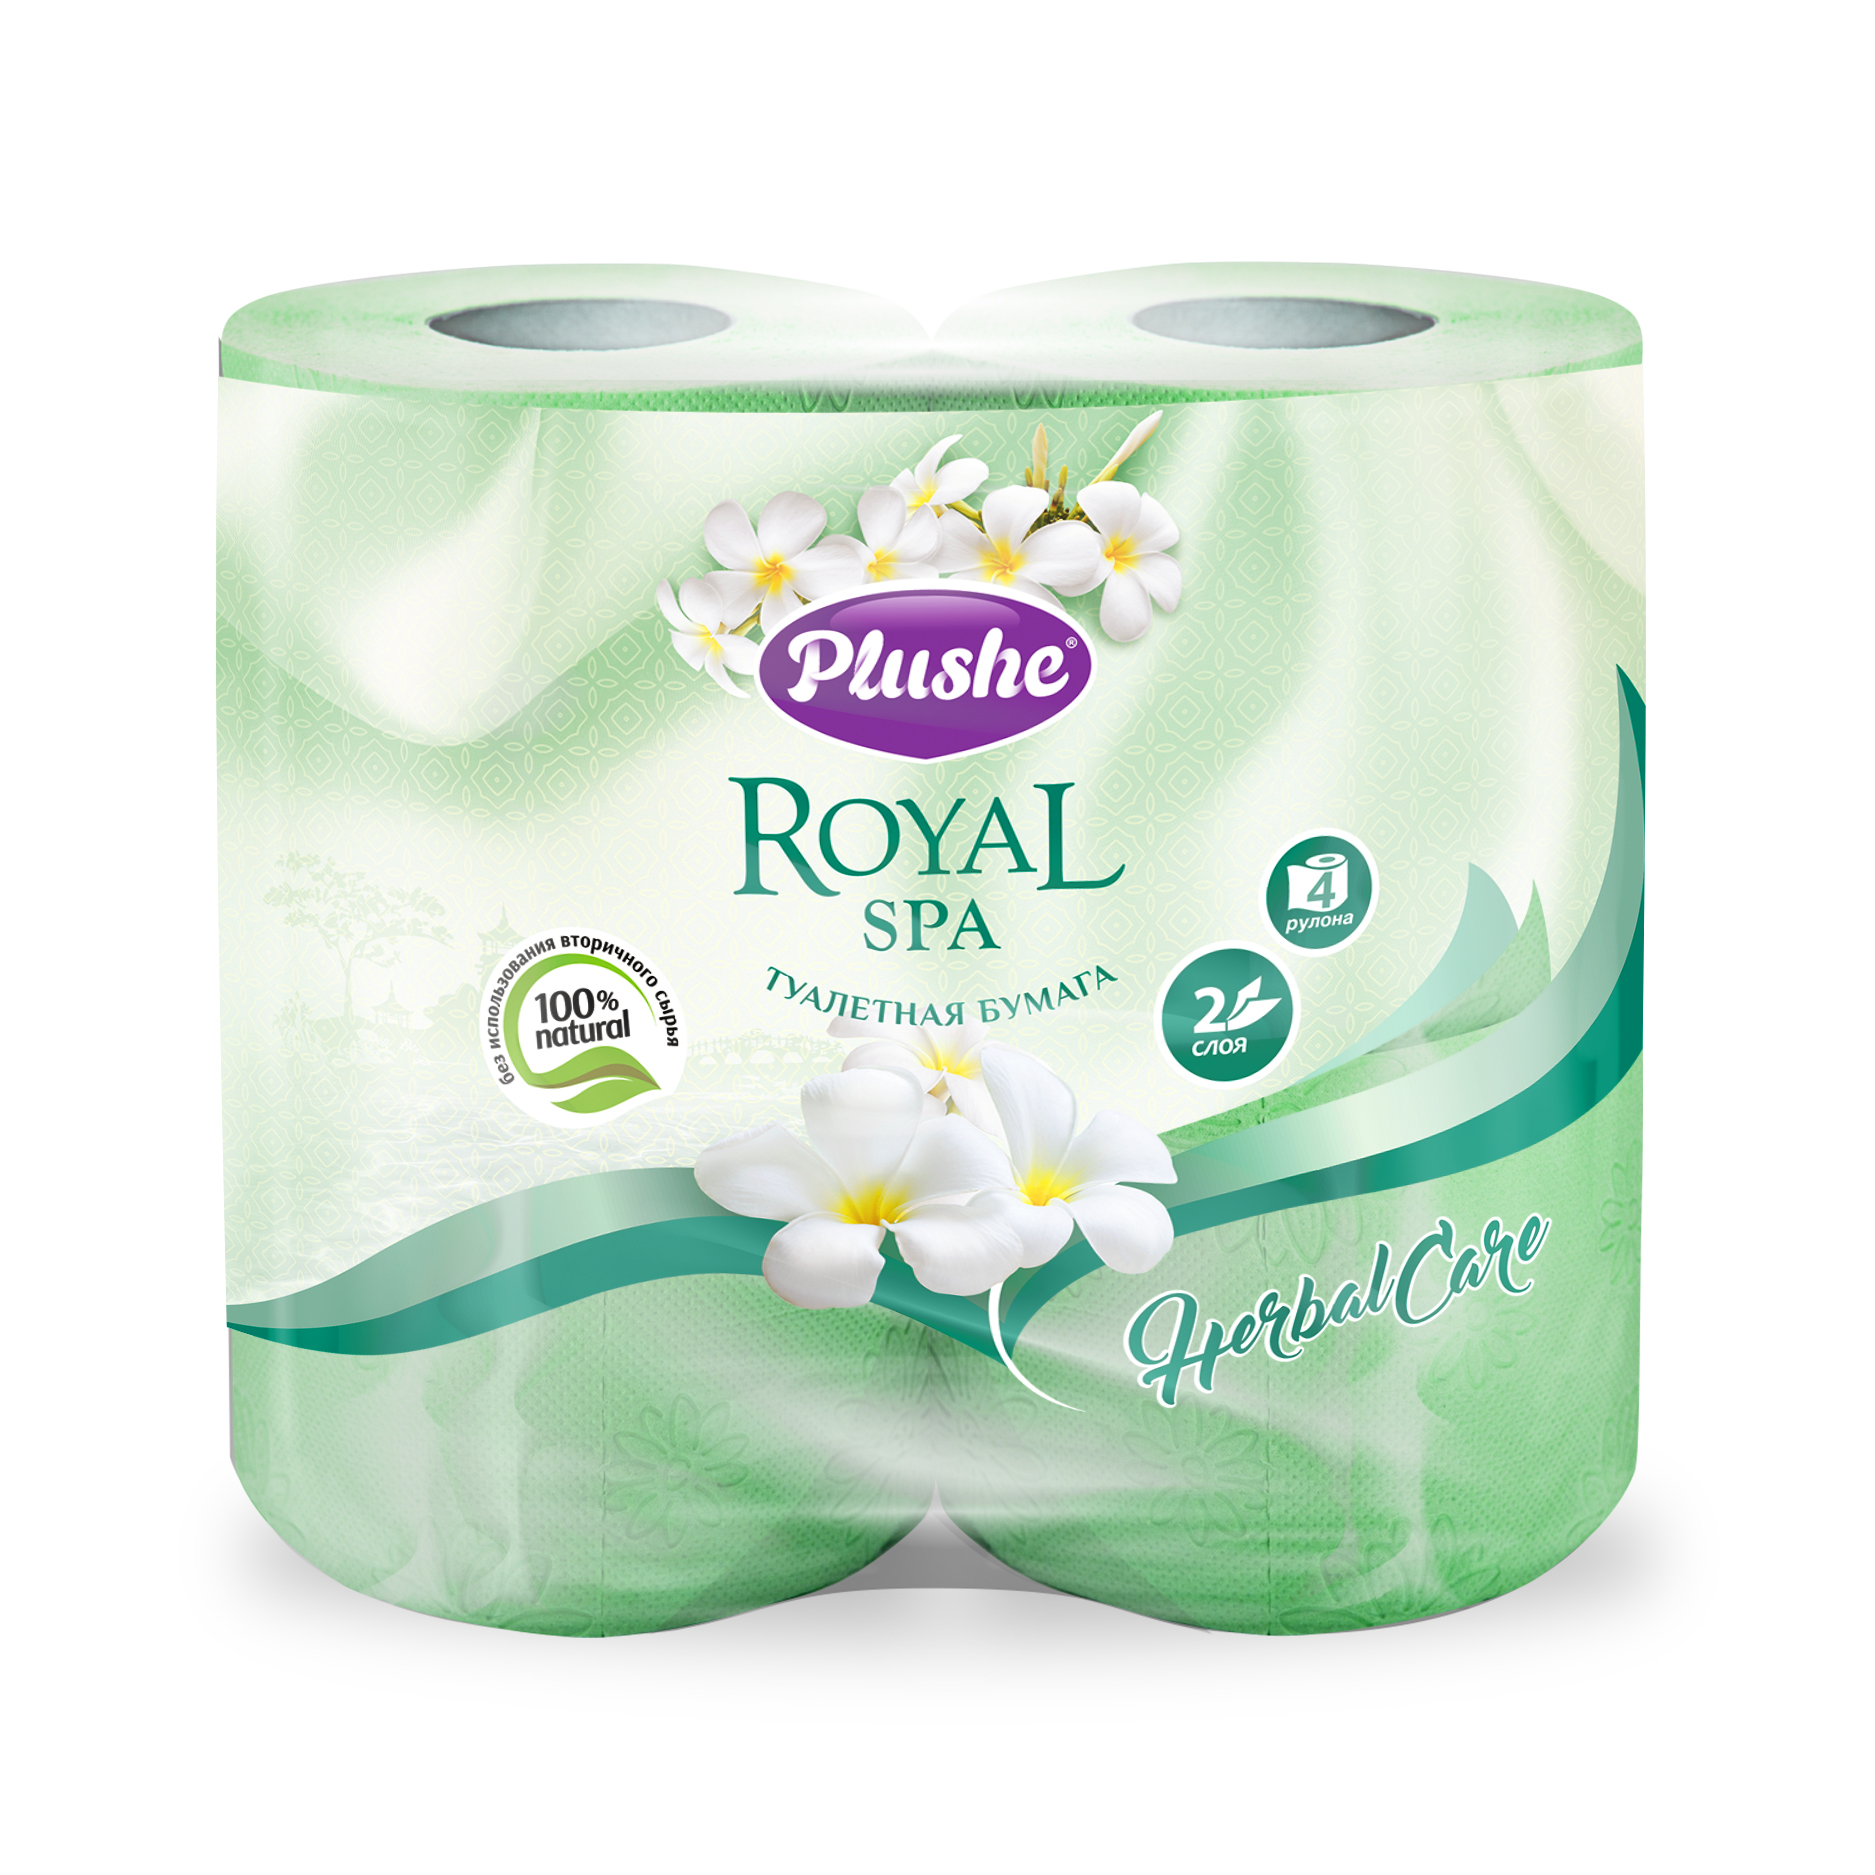 Royal Spa Herbal Care